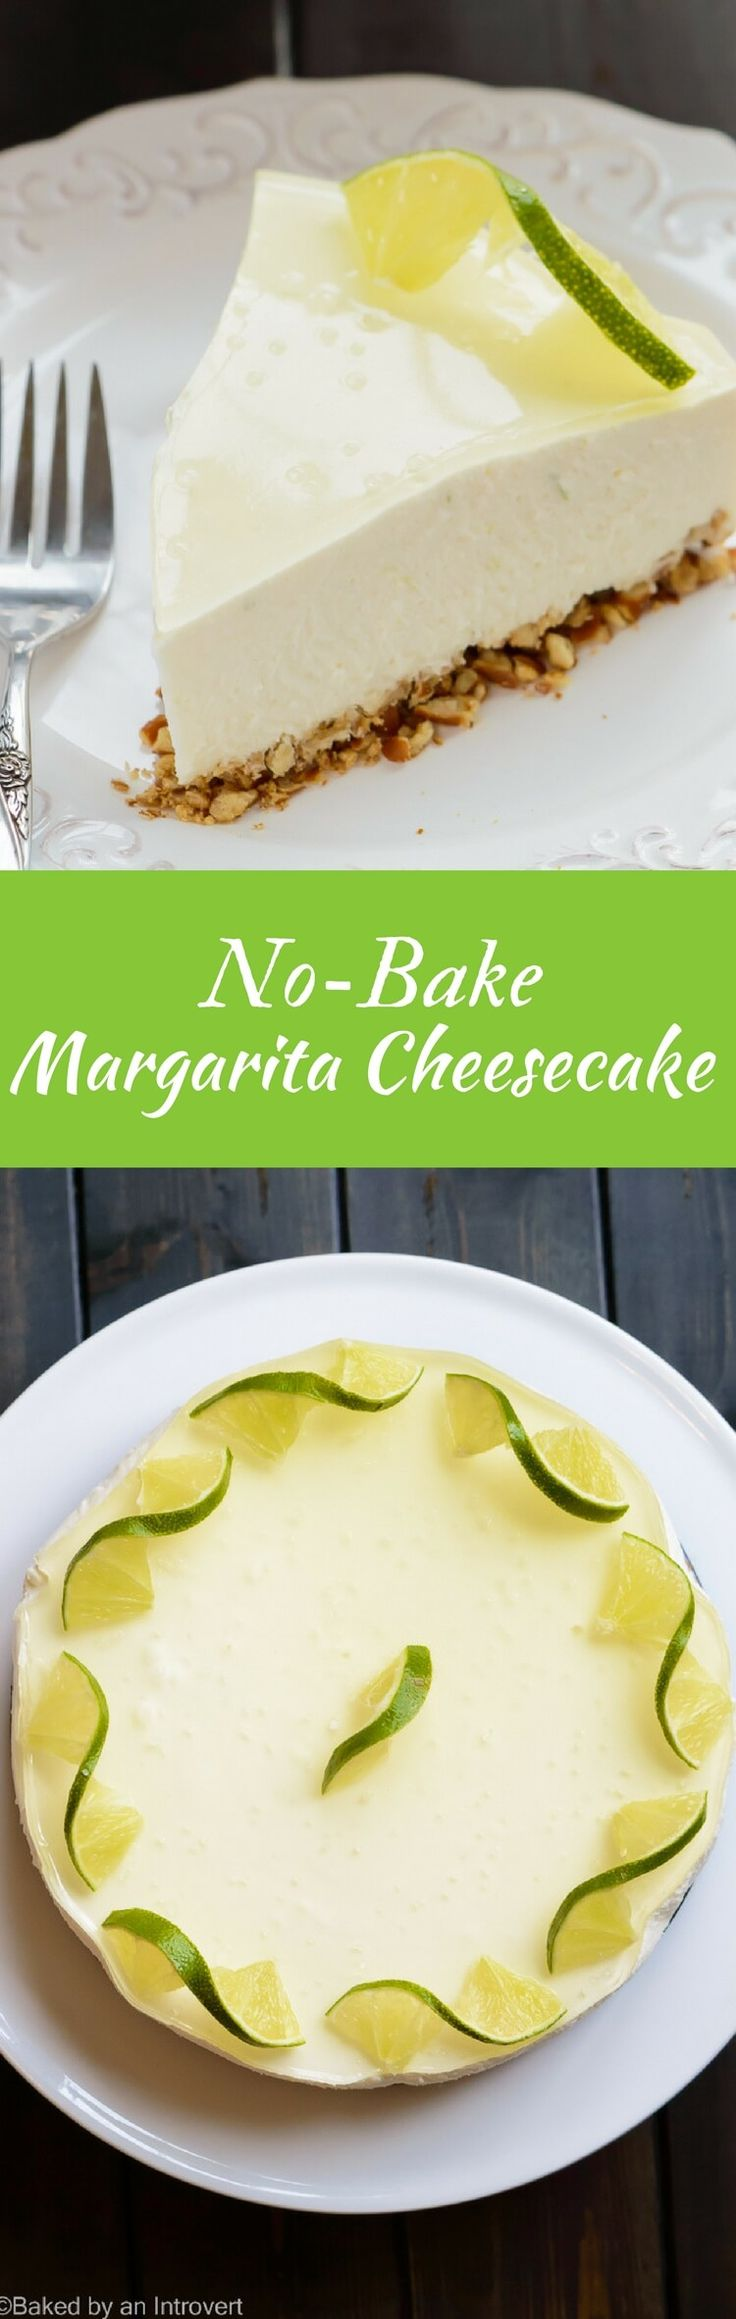 No-bake desserts are always a win! They just seem to taste better. I topped the cheesecake with a layer of margarita flavored gelatin for an…